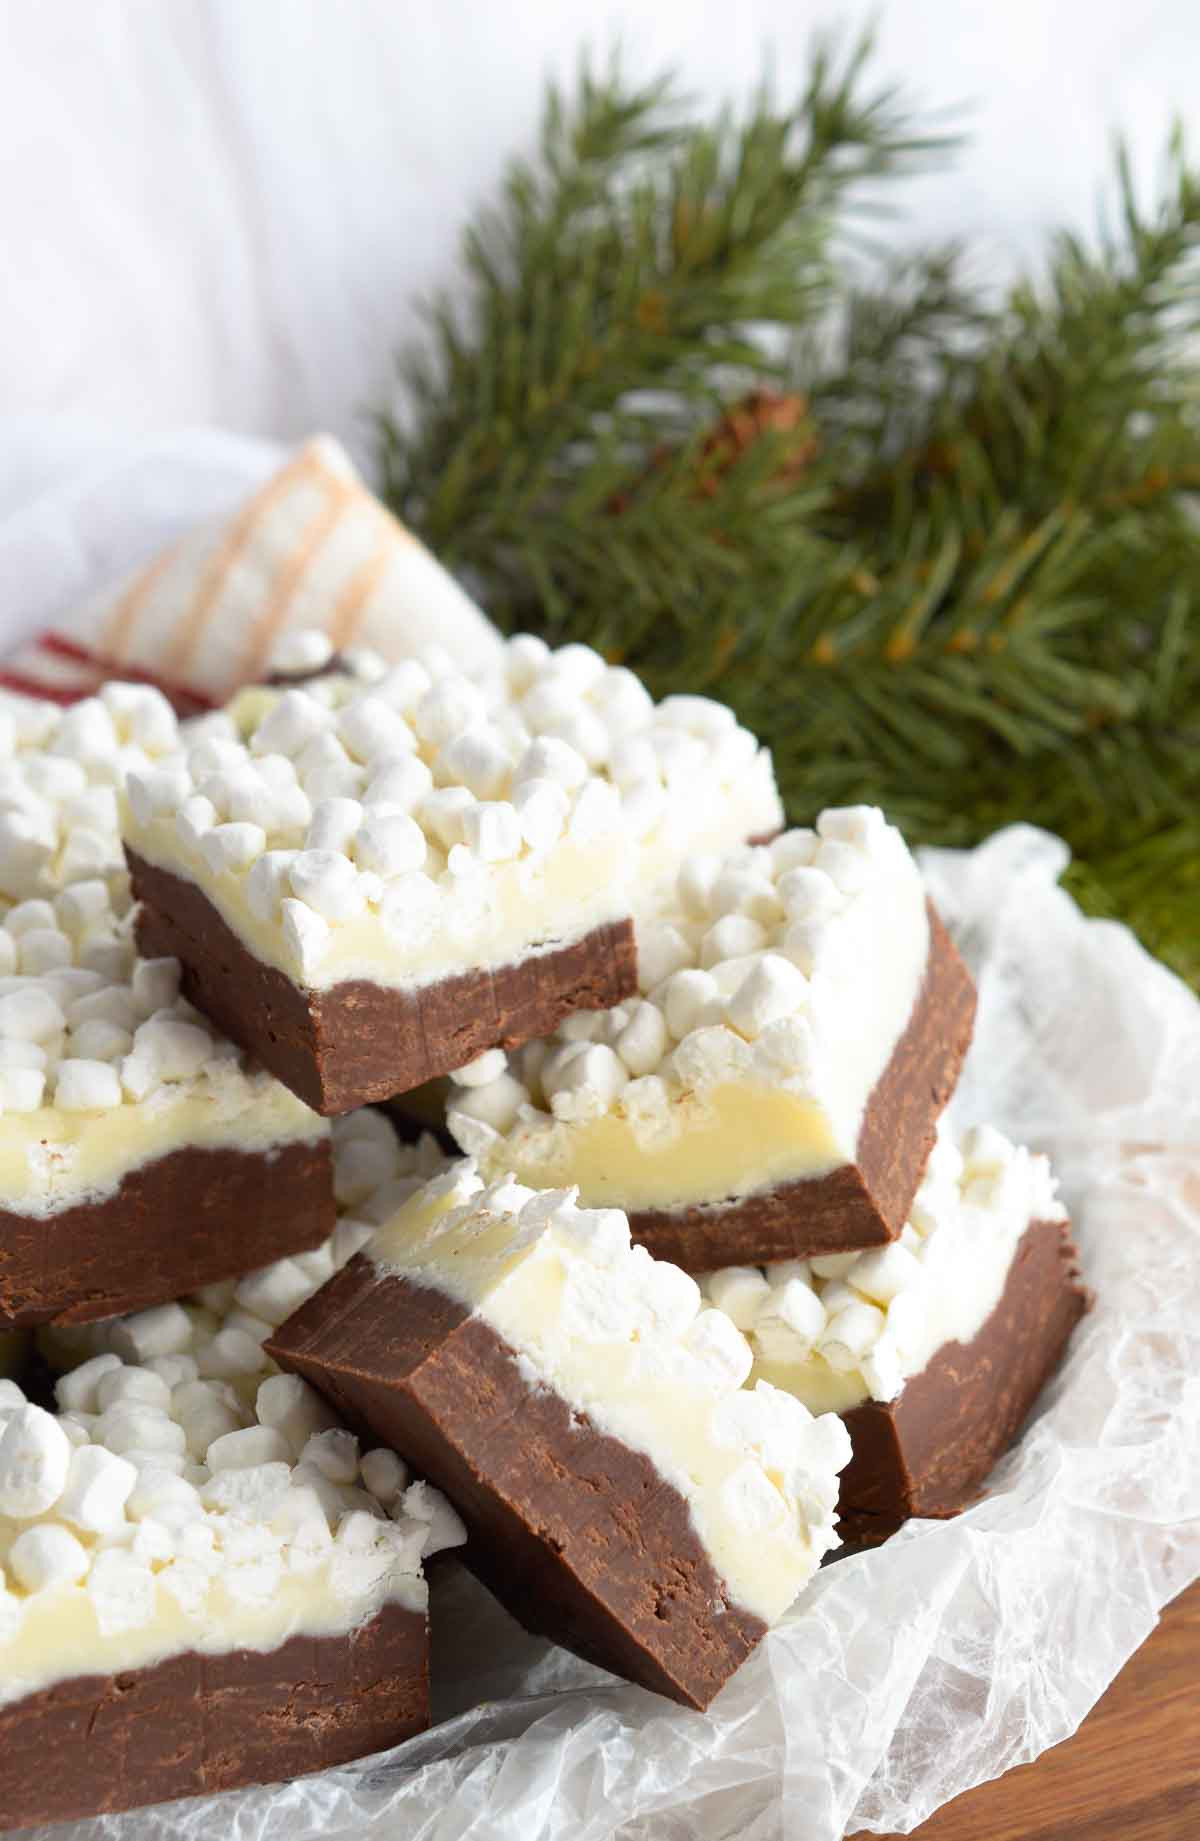 Winter Desserts Recipe  23 Fall & Winter Easy Healthy Desserts To Make At Home